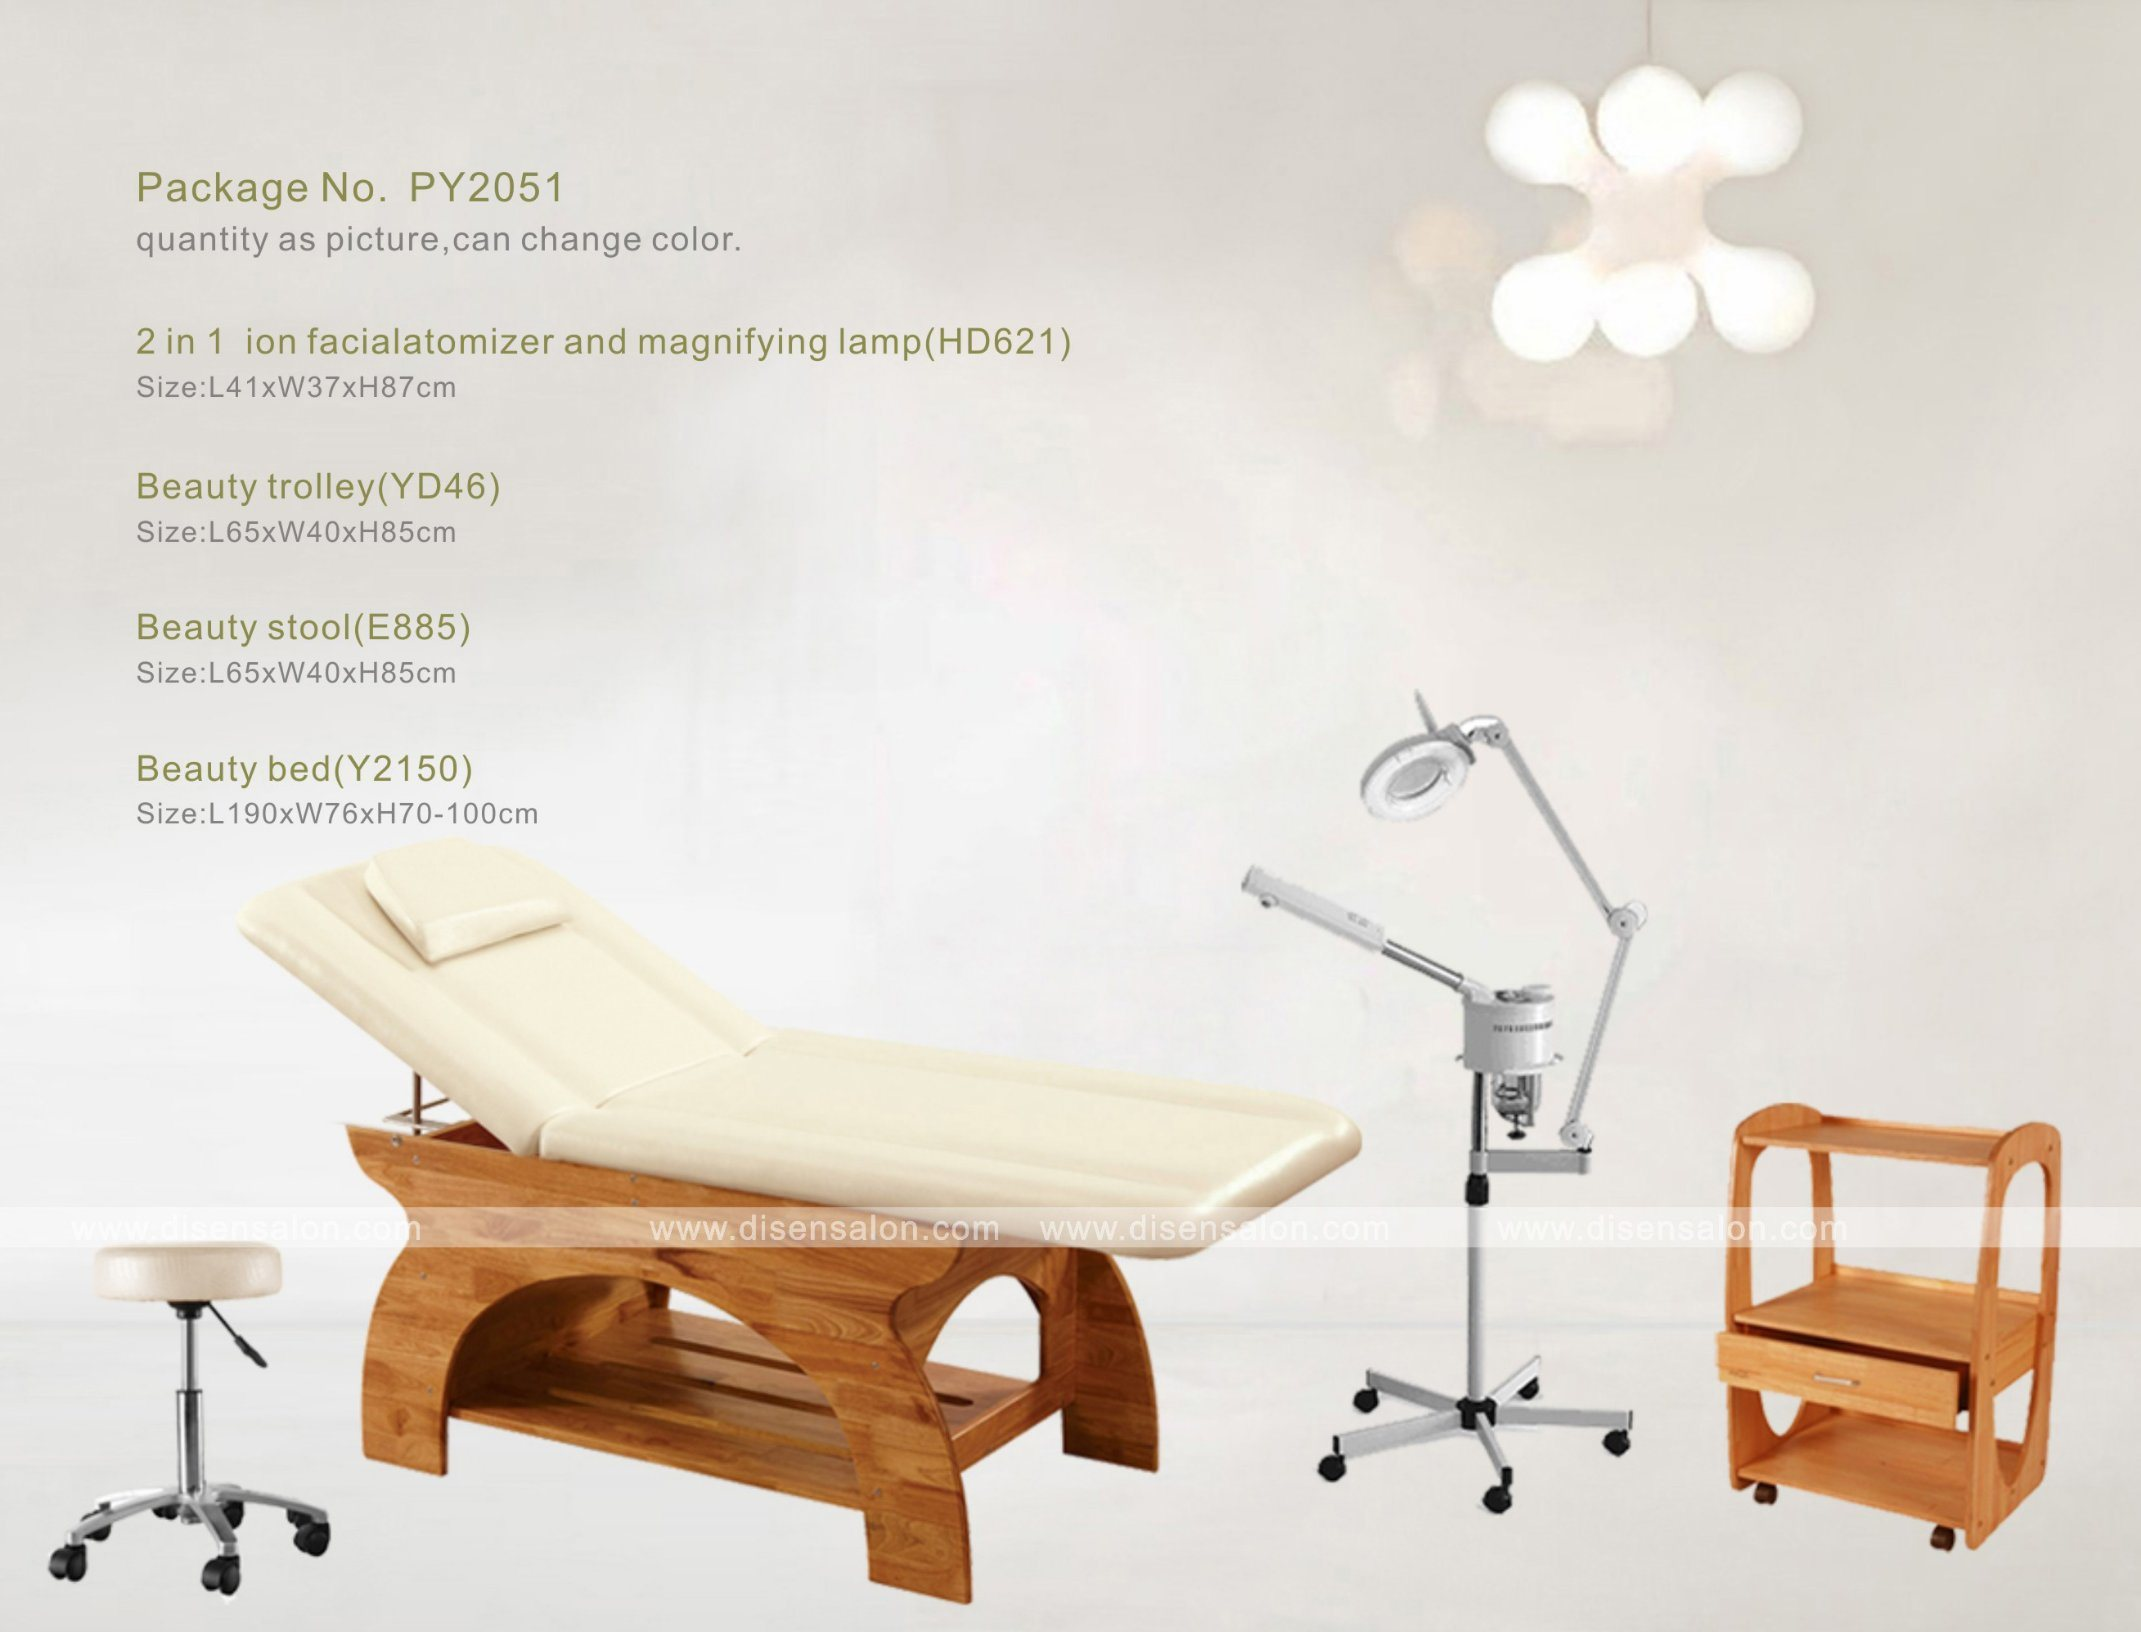 Massage Beauty Bed (Y2150)